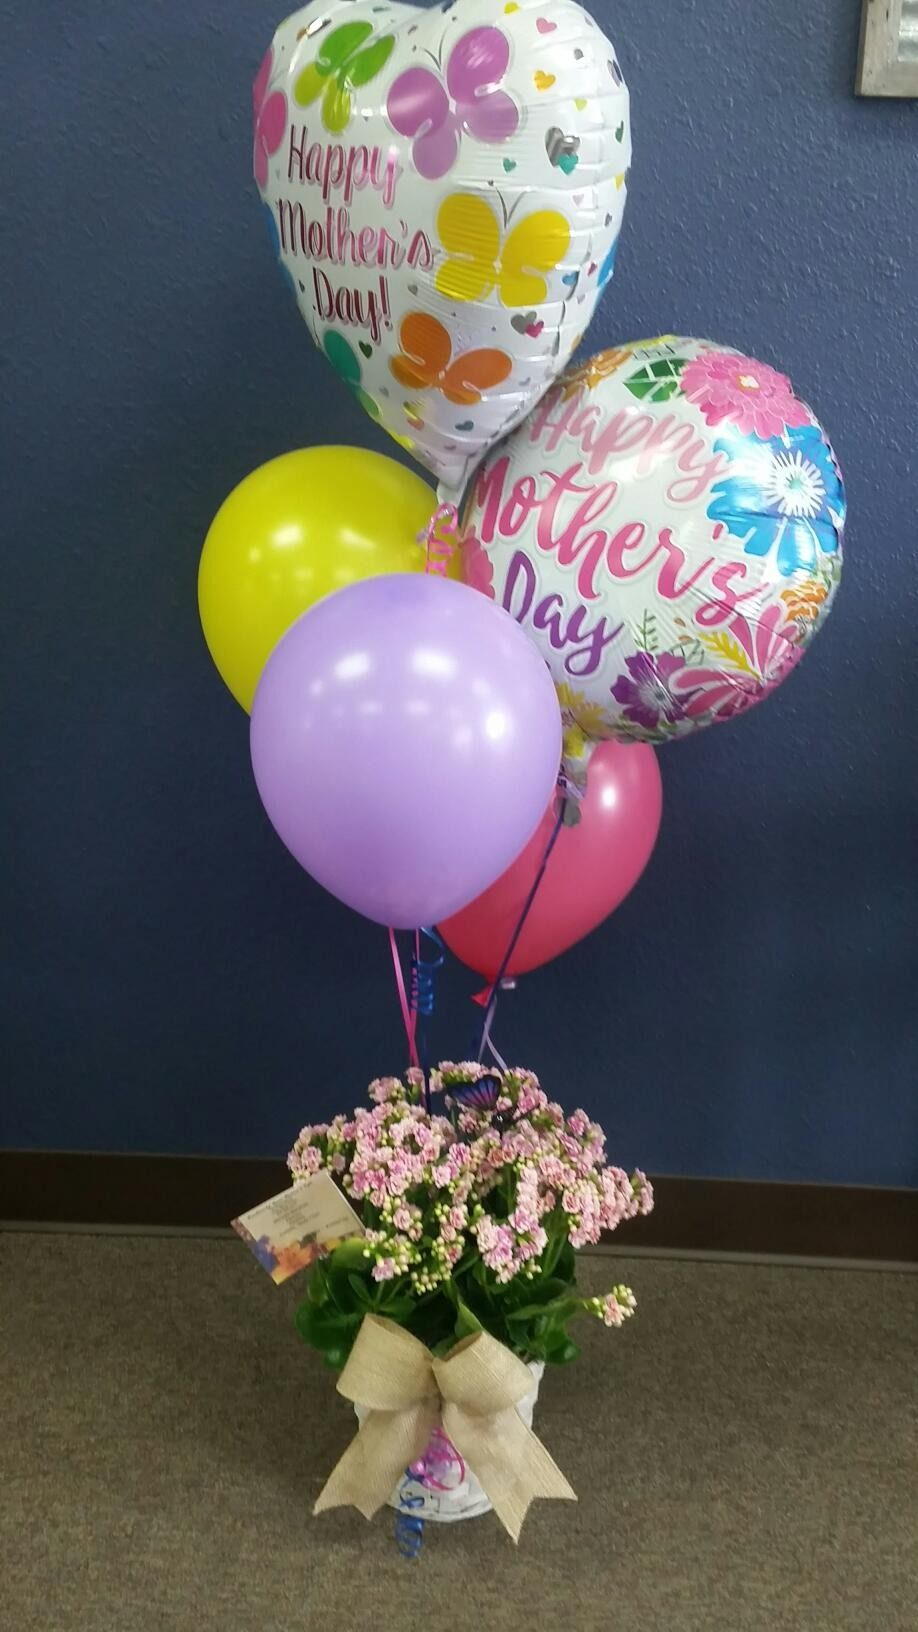 Balloon bouquet and plant creations by grace florist clute tx 77531 izmirmasajfo